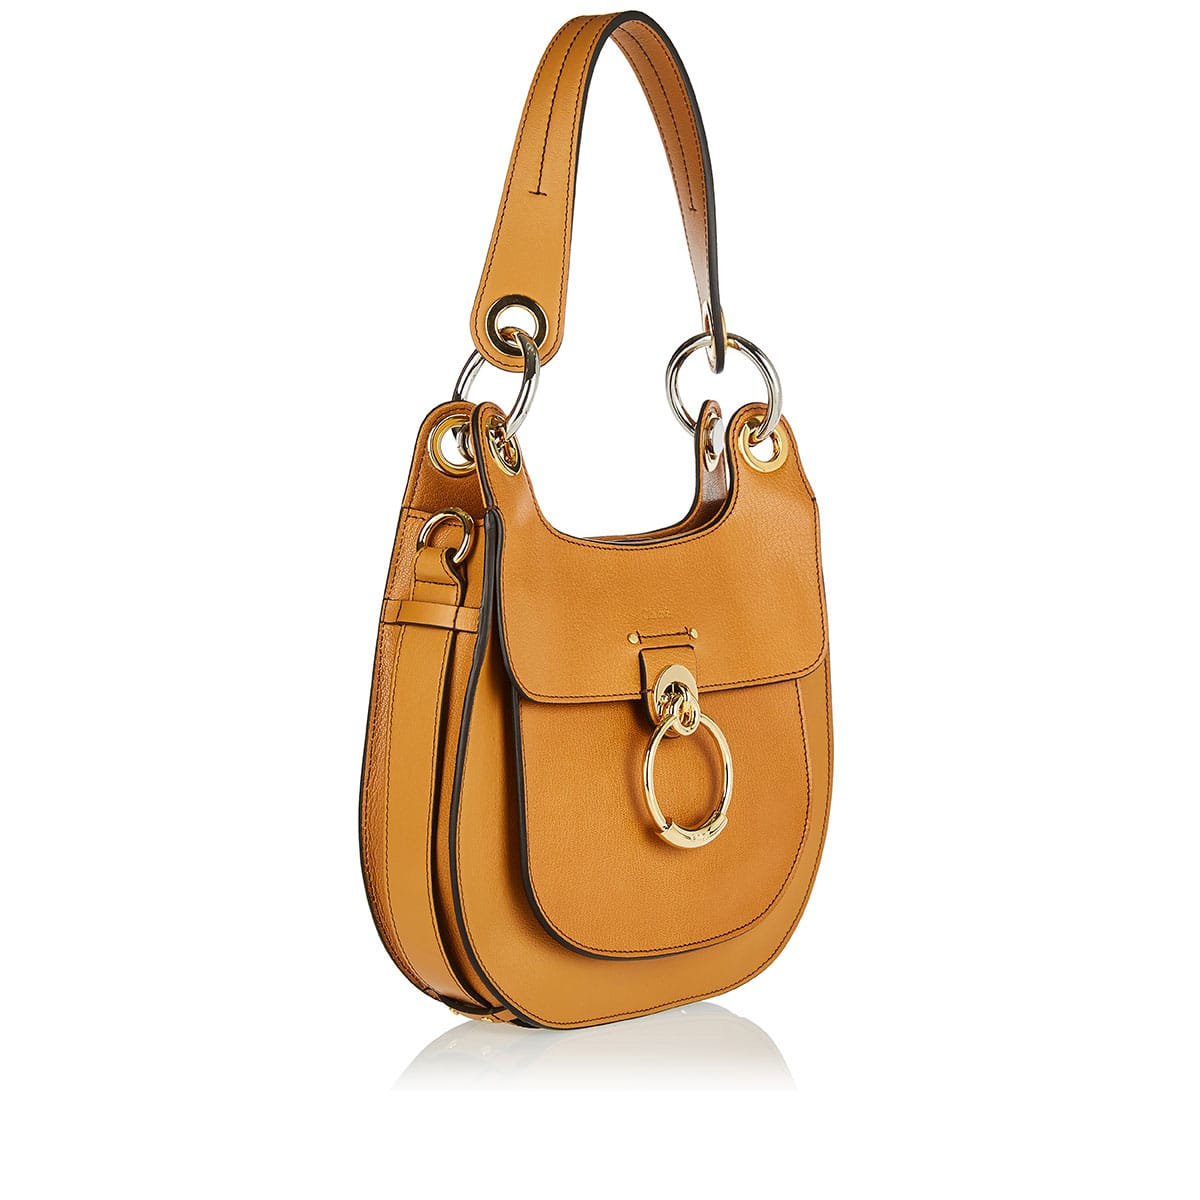 Tess leather shoulder bag